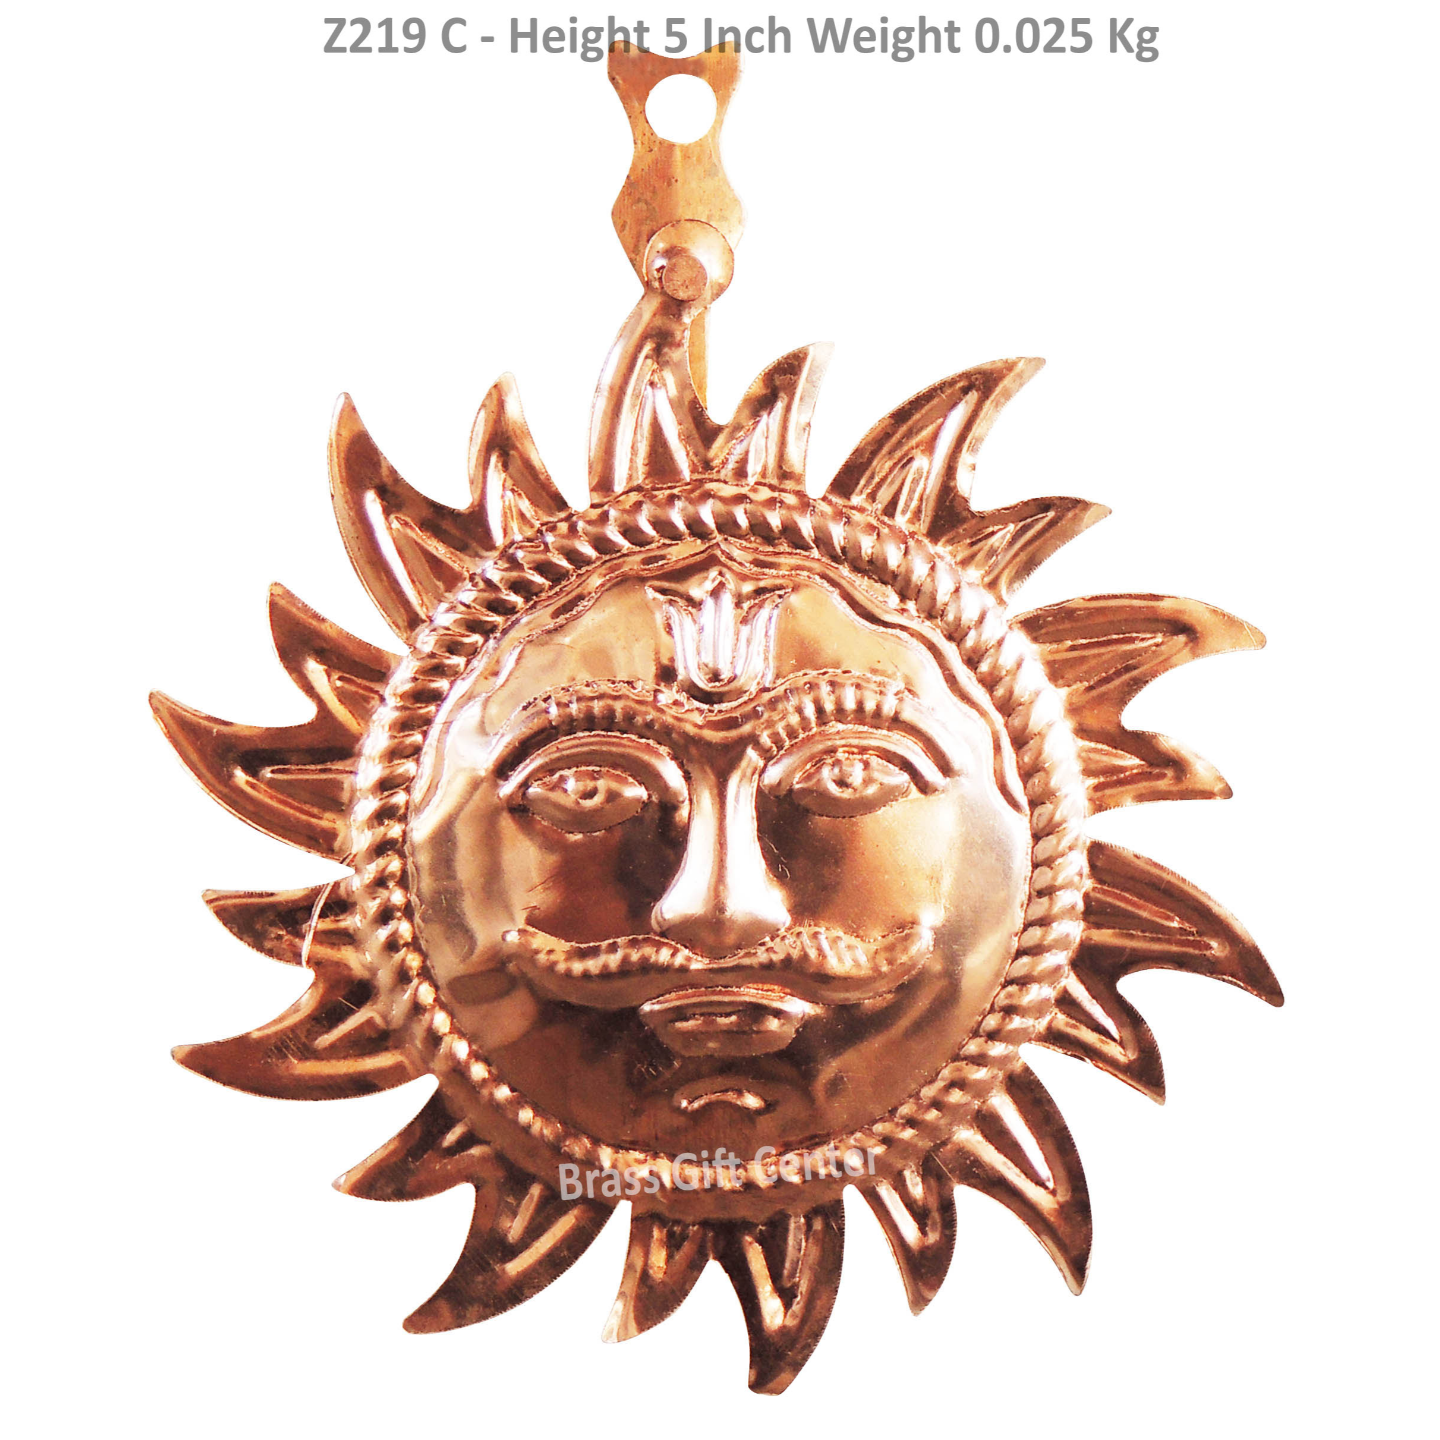 Copper Metal Wall Hanging Sun With Copper Finish - 5 Inch Z219 C